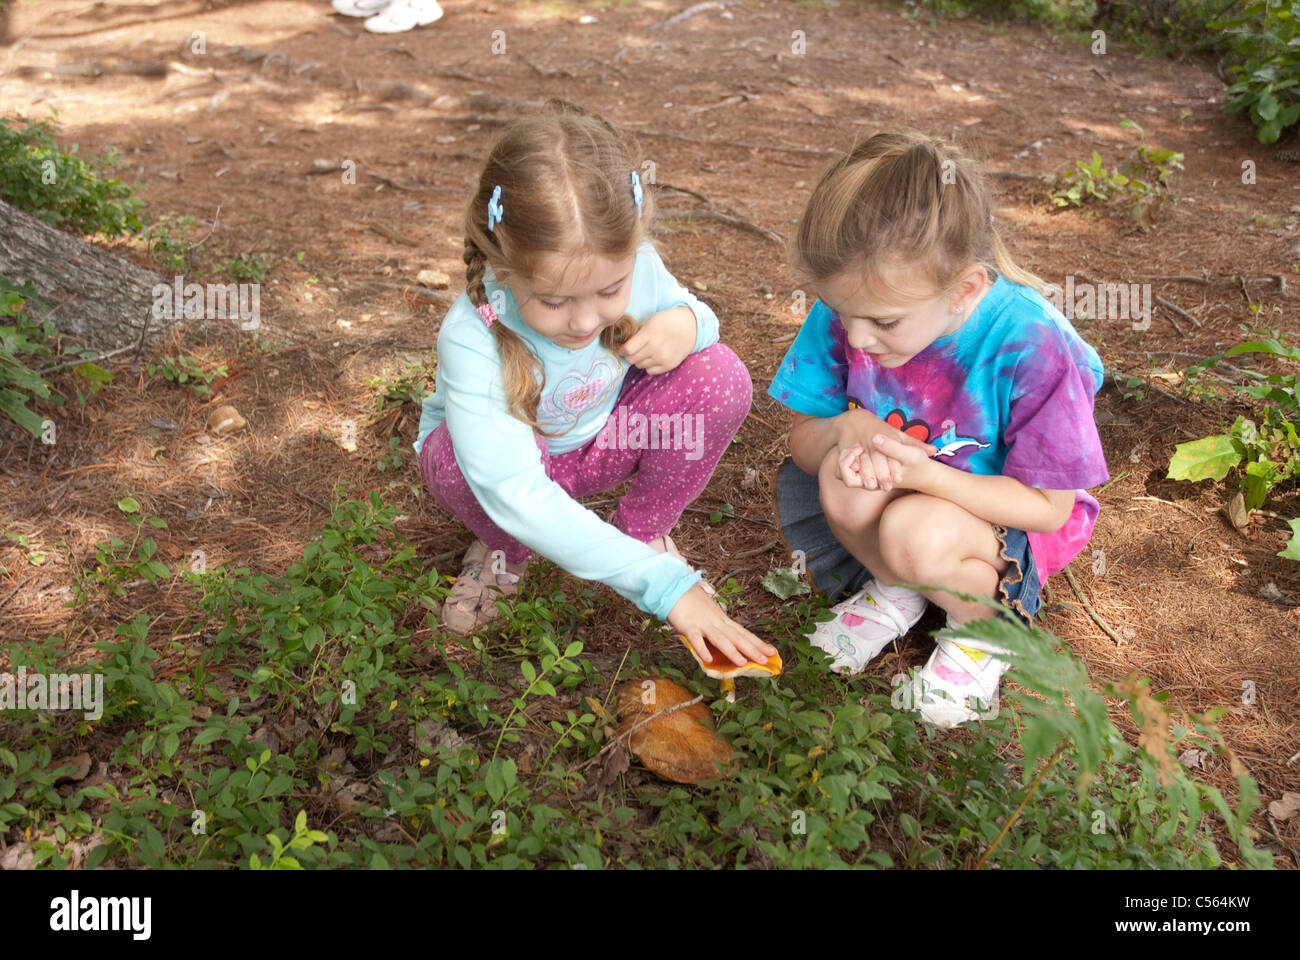 8 year old girls studying a mushroom at Tully Lake Campground, Royalston, MA - Stock Image